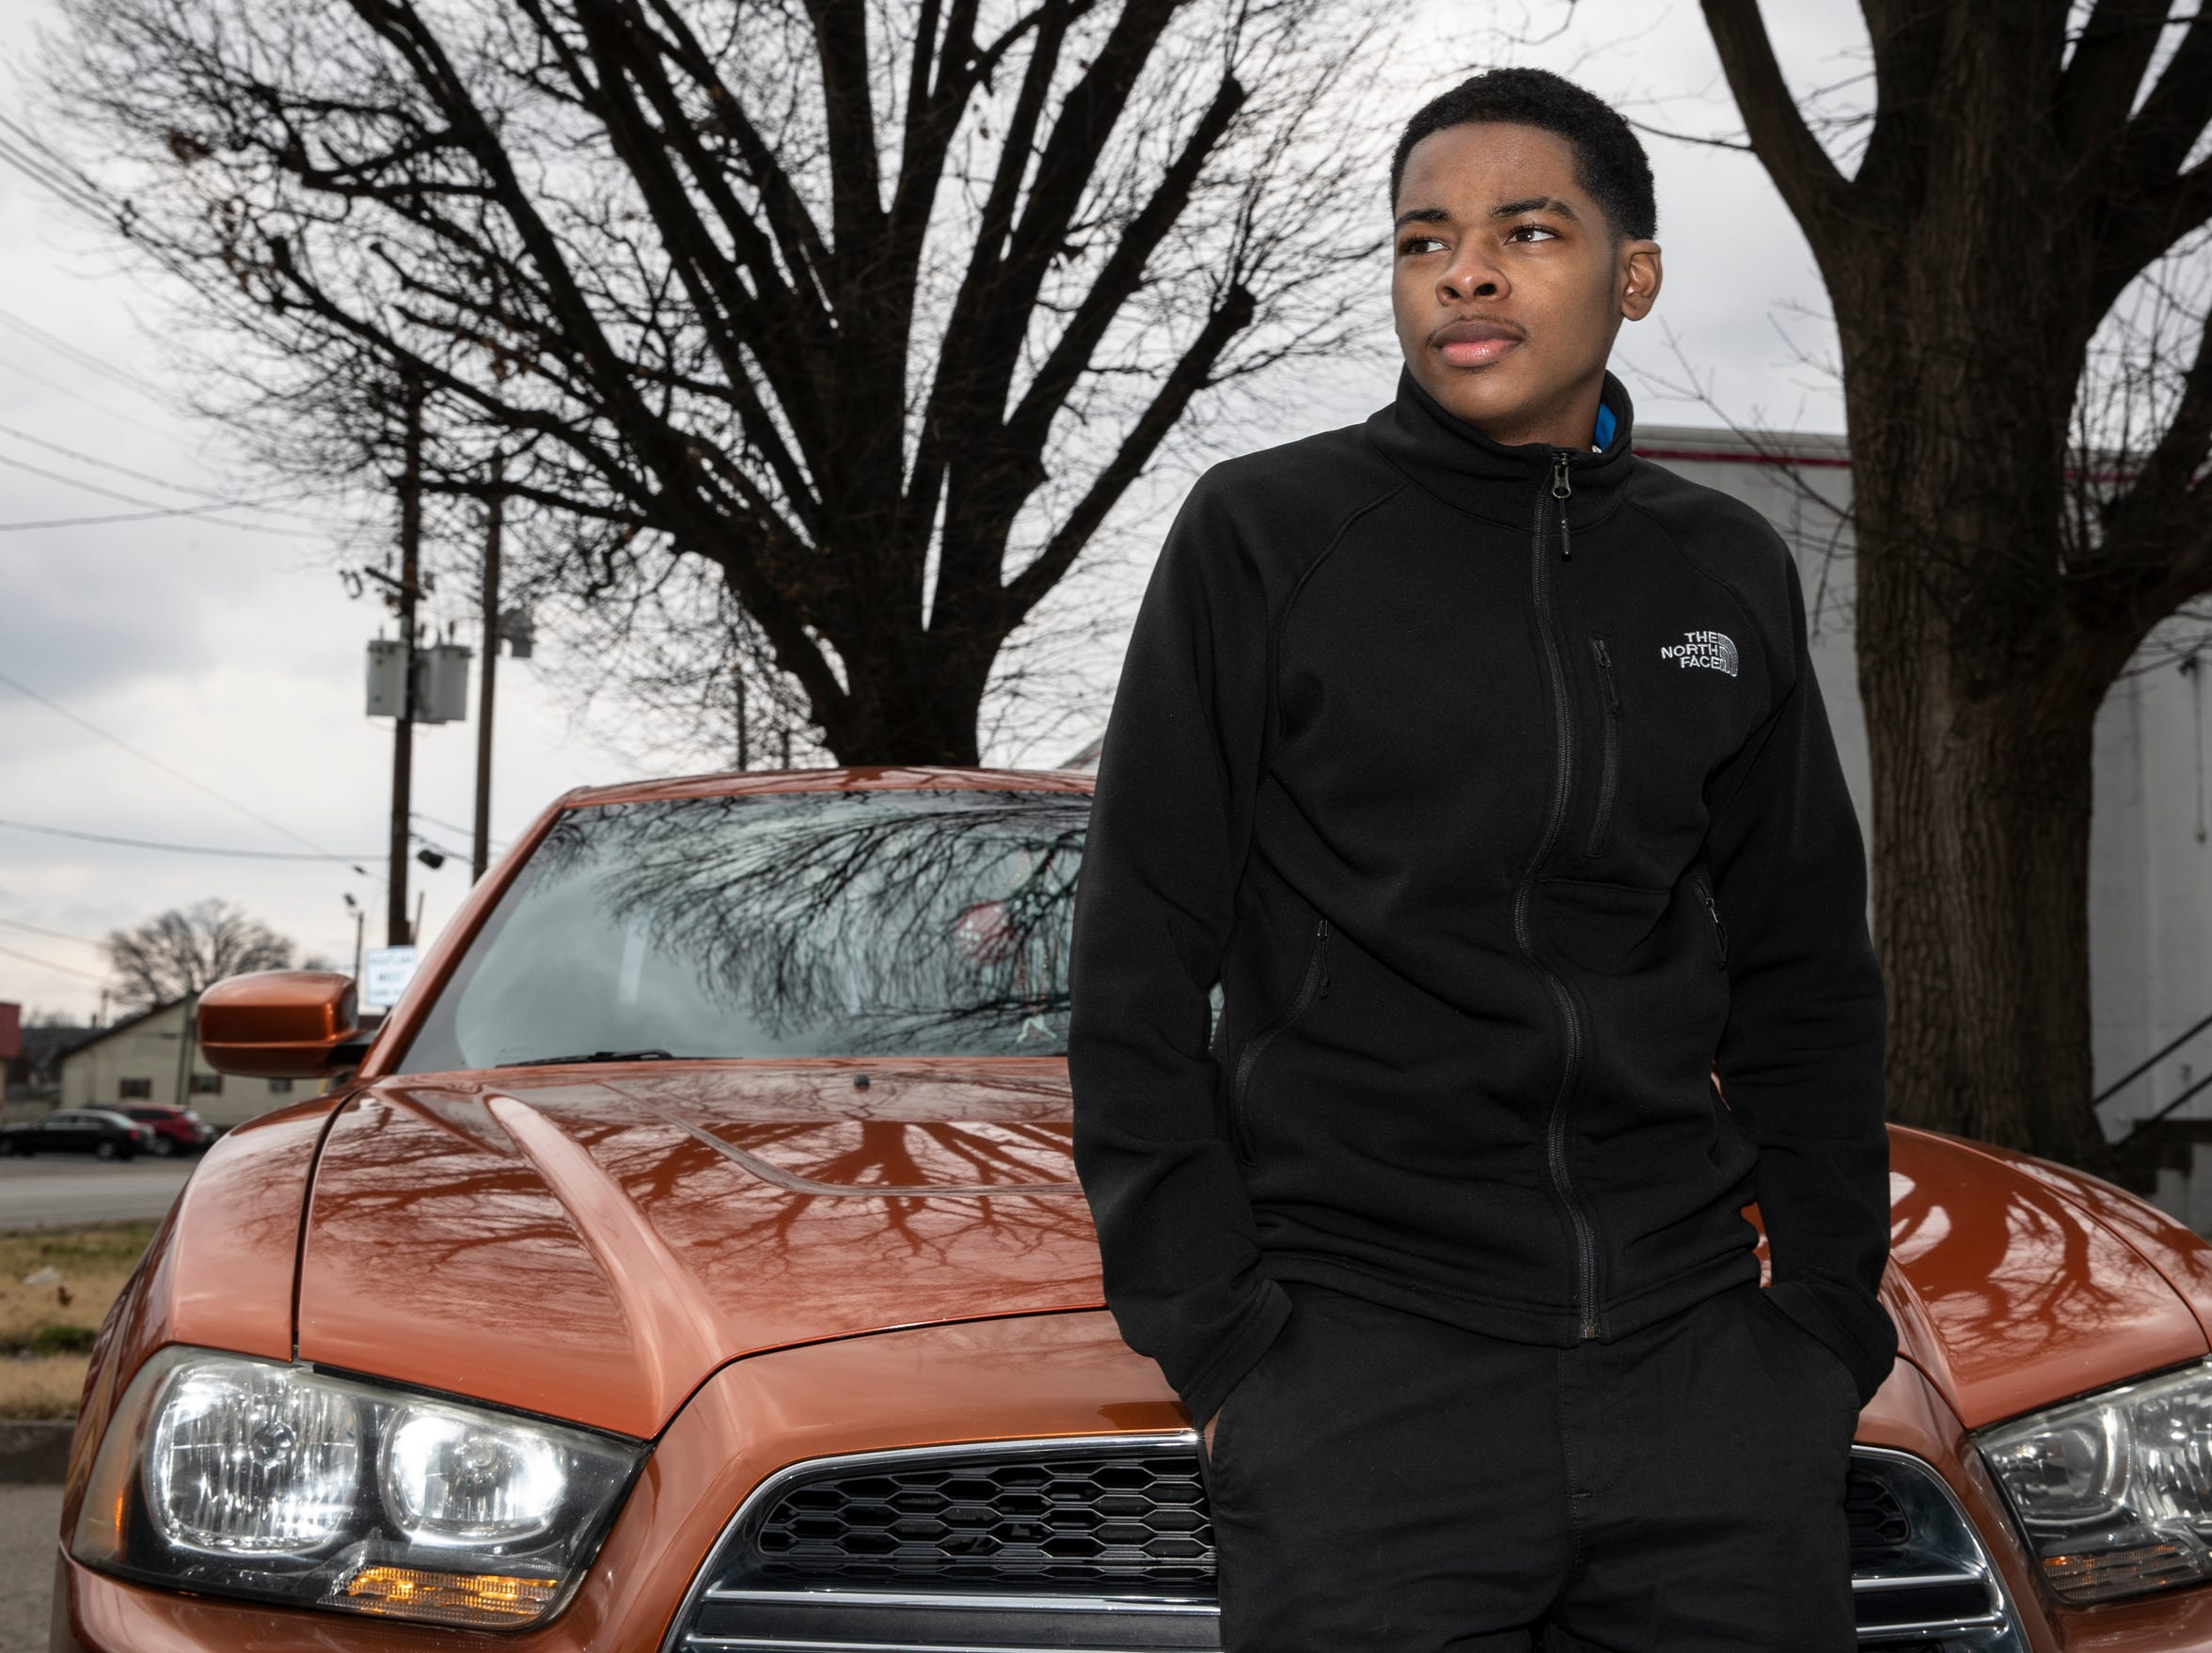 Tae-Ahn Lea, 18 was stopped by police, frisked and handcuffed at 18th and Burwell Ave. He is seen with the car he was driving. March 21, 2019.